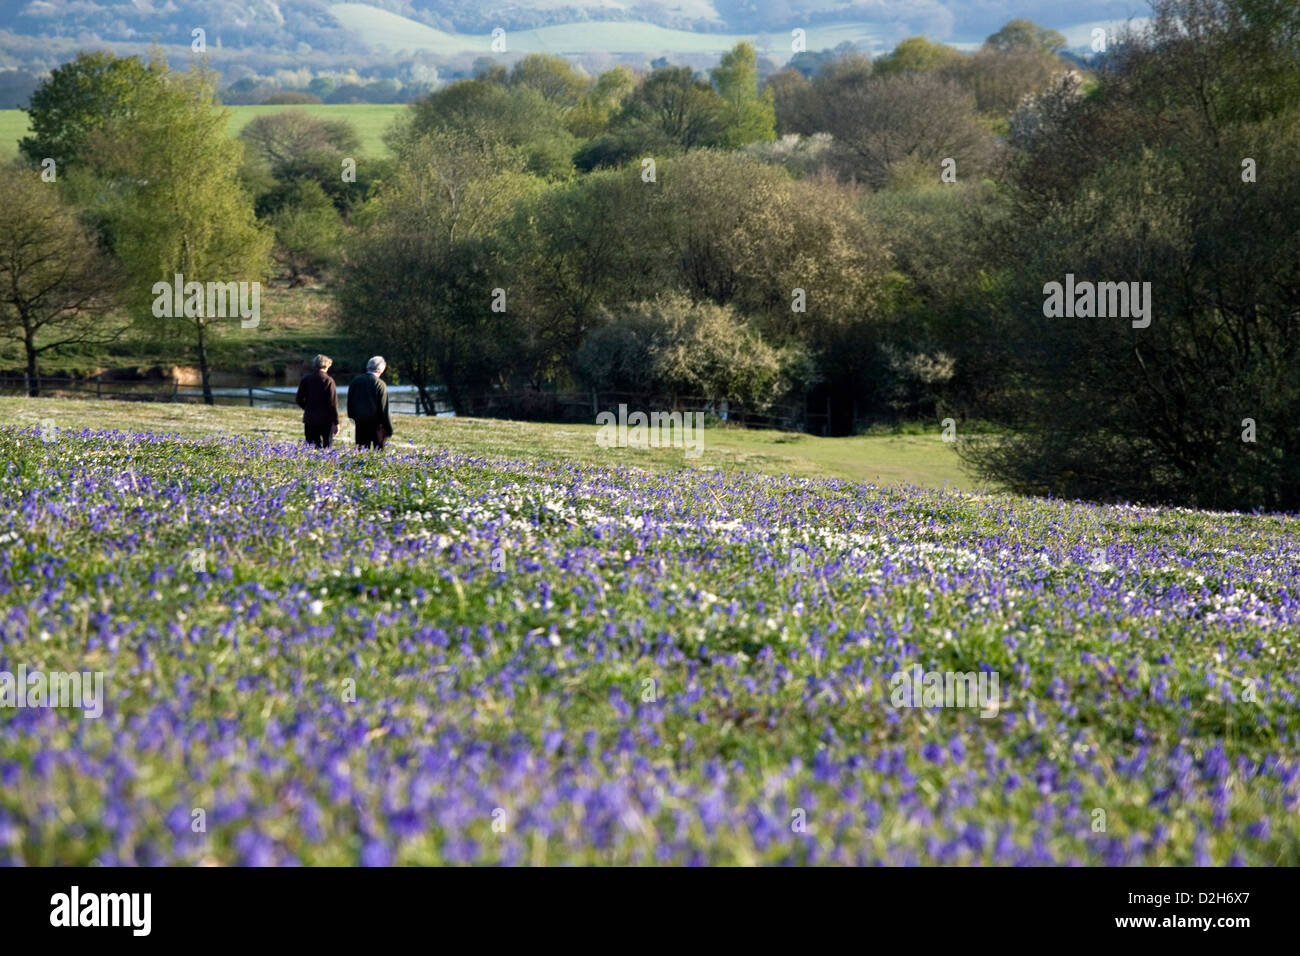 An Open Field Of Bluebell Flowers In Spring Time In The South East